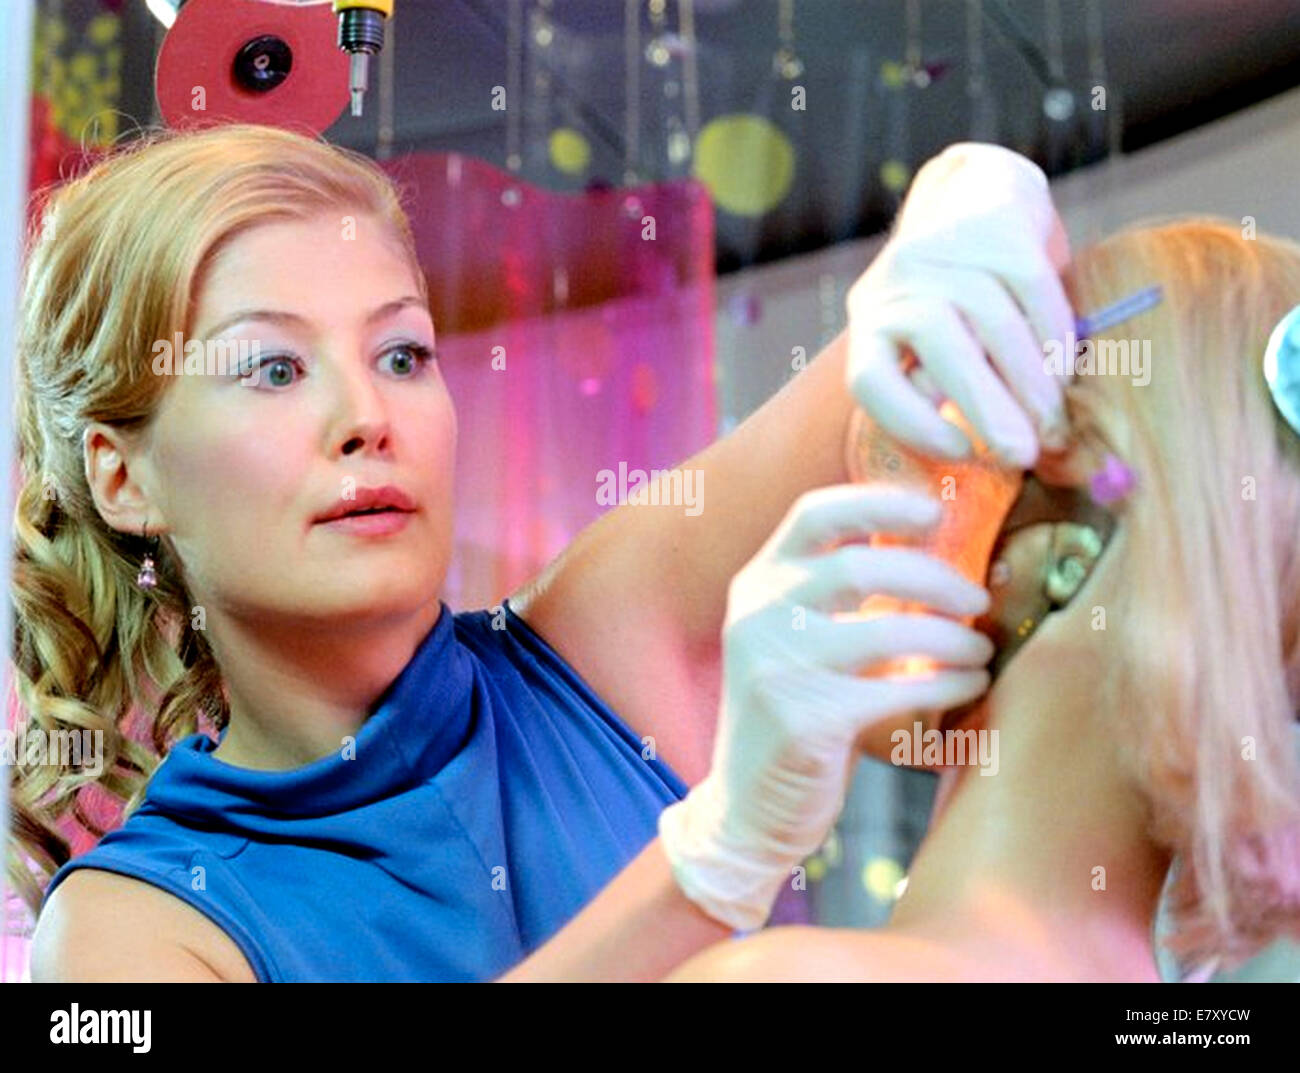 SURROGATES 2009 Touchstone Pictures film with Rosamund Pike - Stock Image